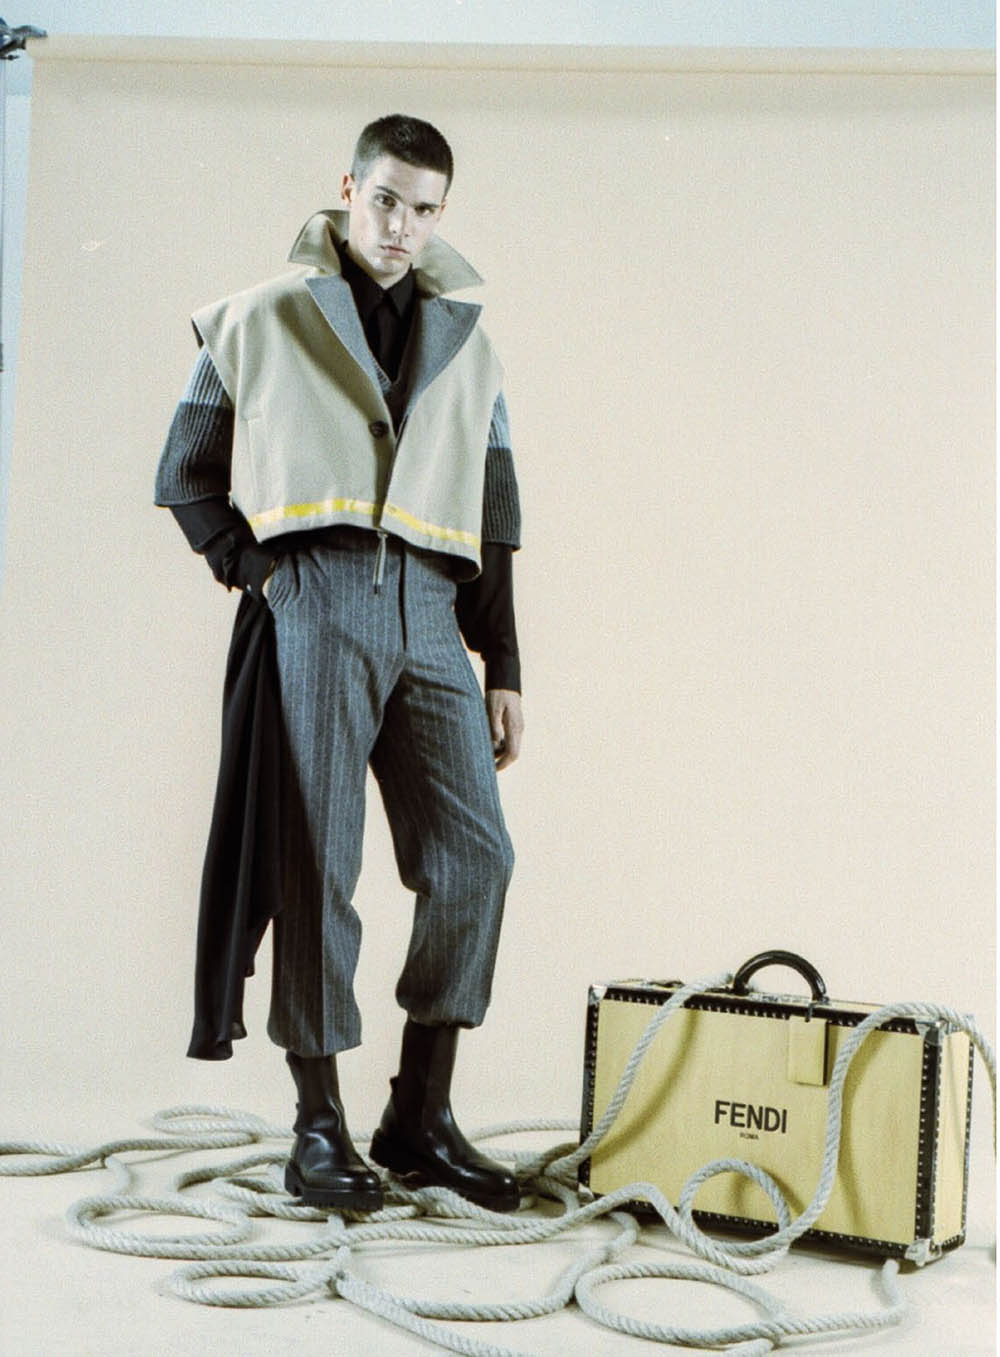 Federico Spinas by Alessio Matricardi for L'Officiel Hommes Malaysia Autumn Winter 2020